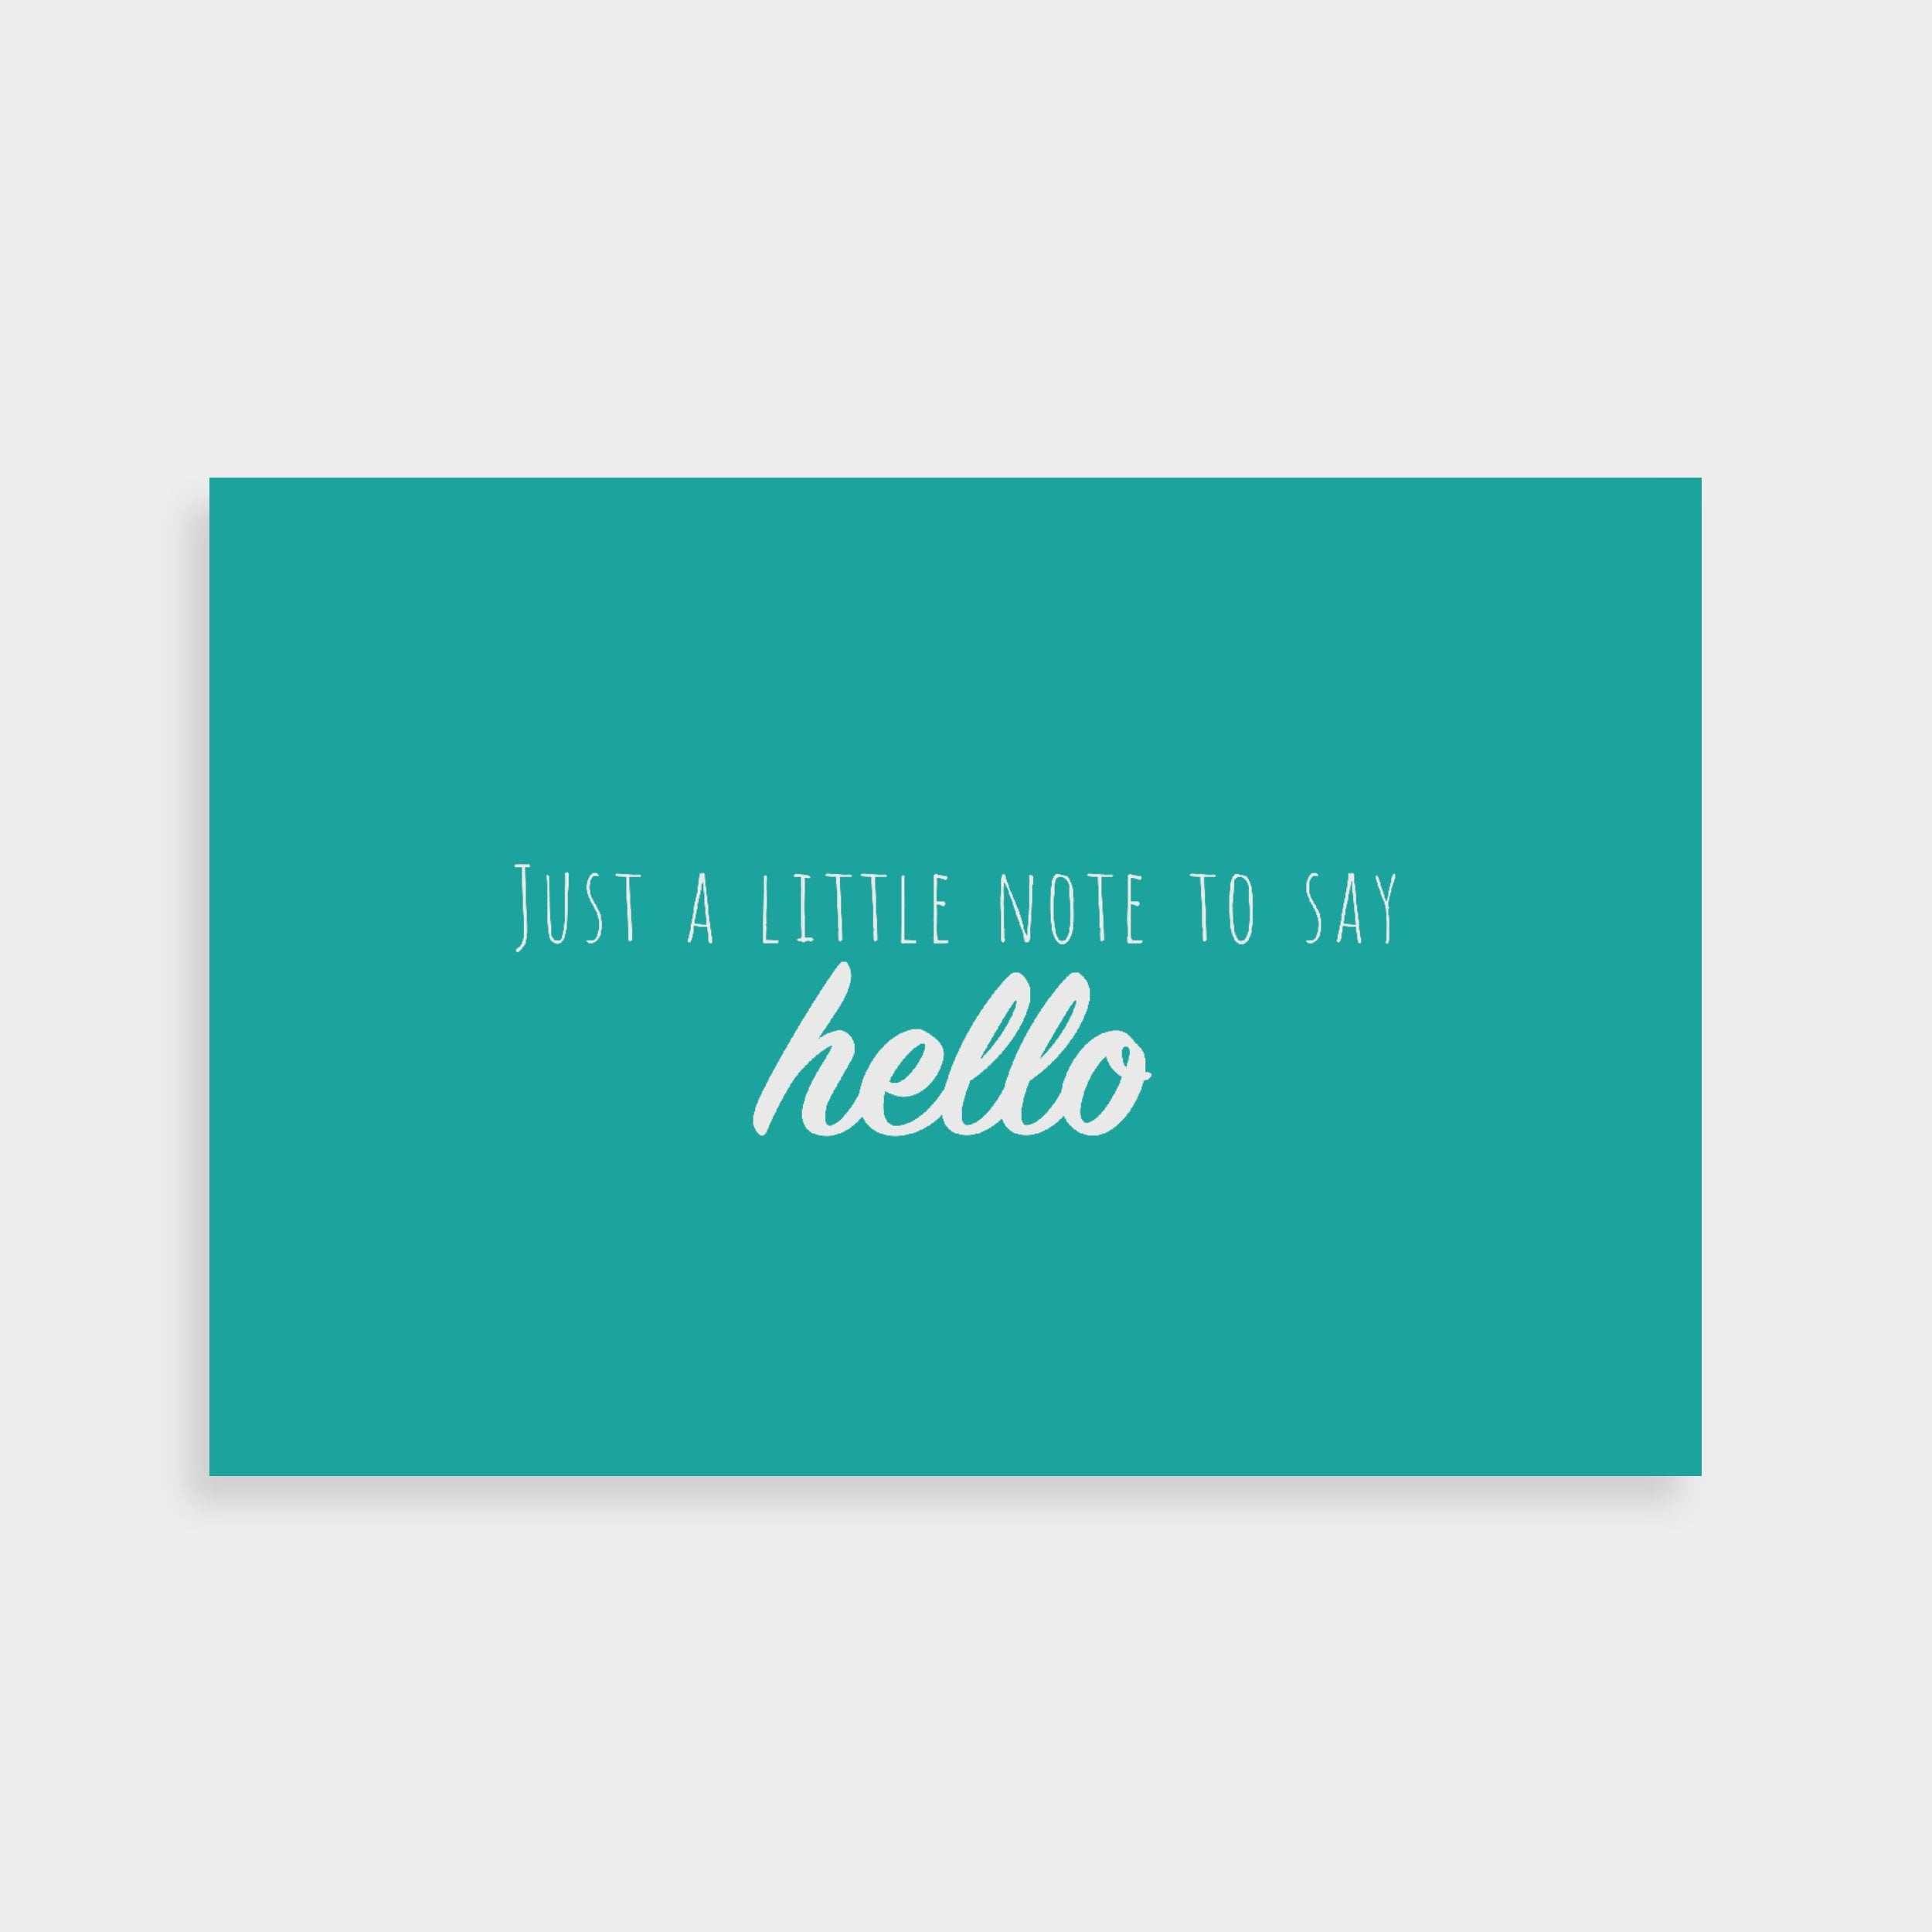 """Teal postcard which says """"Just a little note to look after yourself"""" in a white calligraphy font in the middle"""